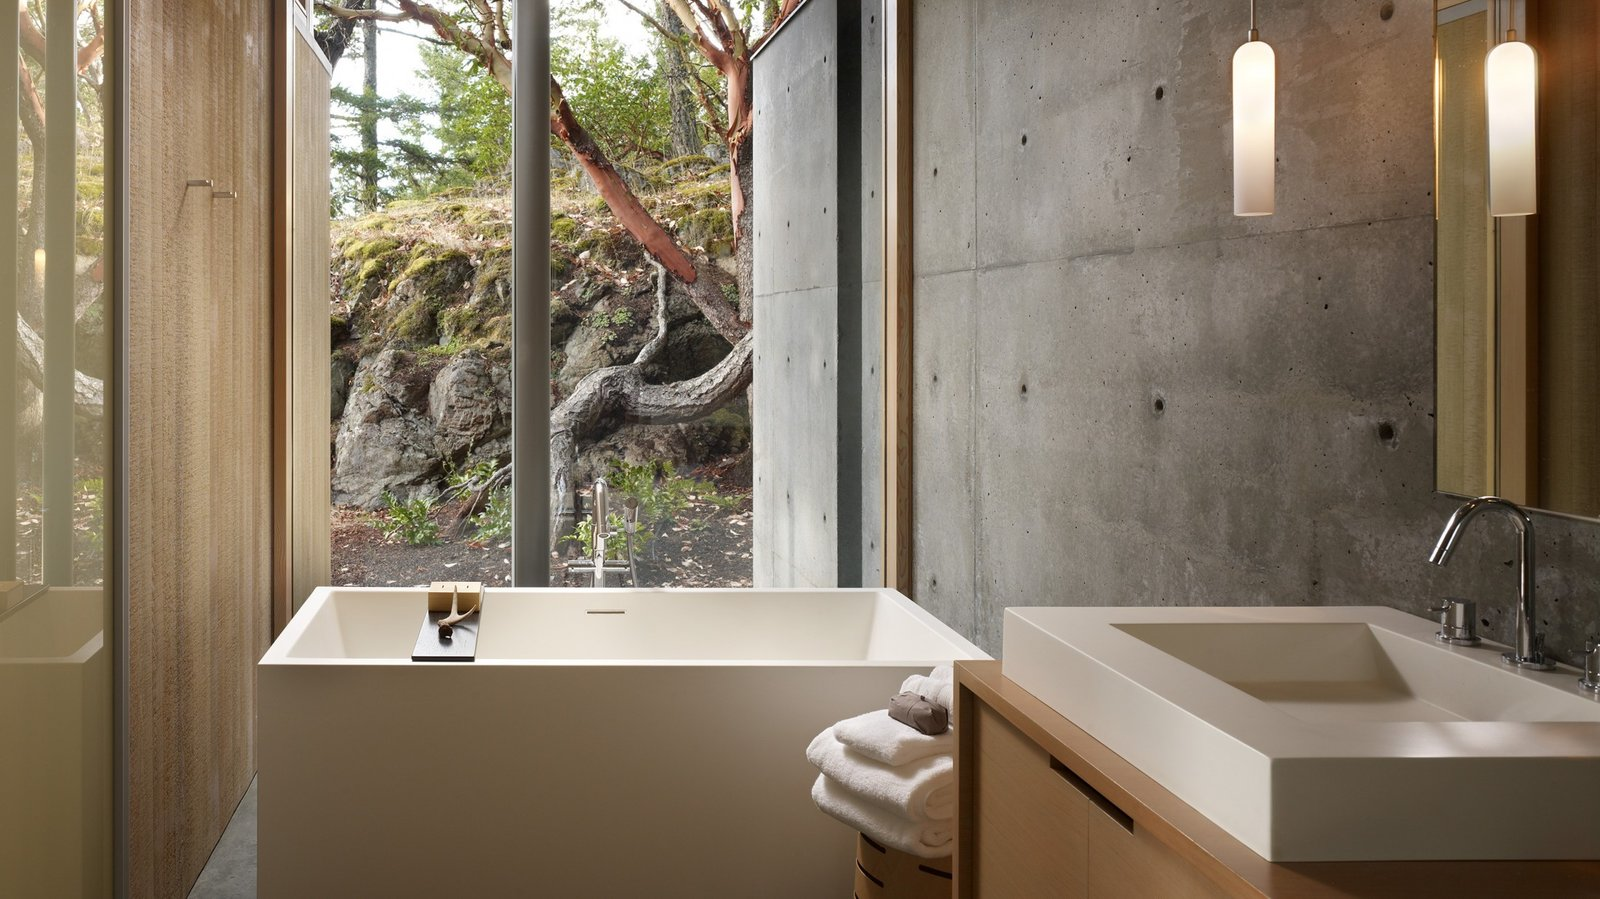 Bath Room, Pendant Lighting, Freestanding Tub, Ceiling Lighting, Vessel Sink, Accent Lighting, Concrete Floor, Concrete Wall, Soaking Tub, and Wood Counter  Suncrest Residence by Heliotrope Architects